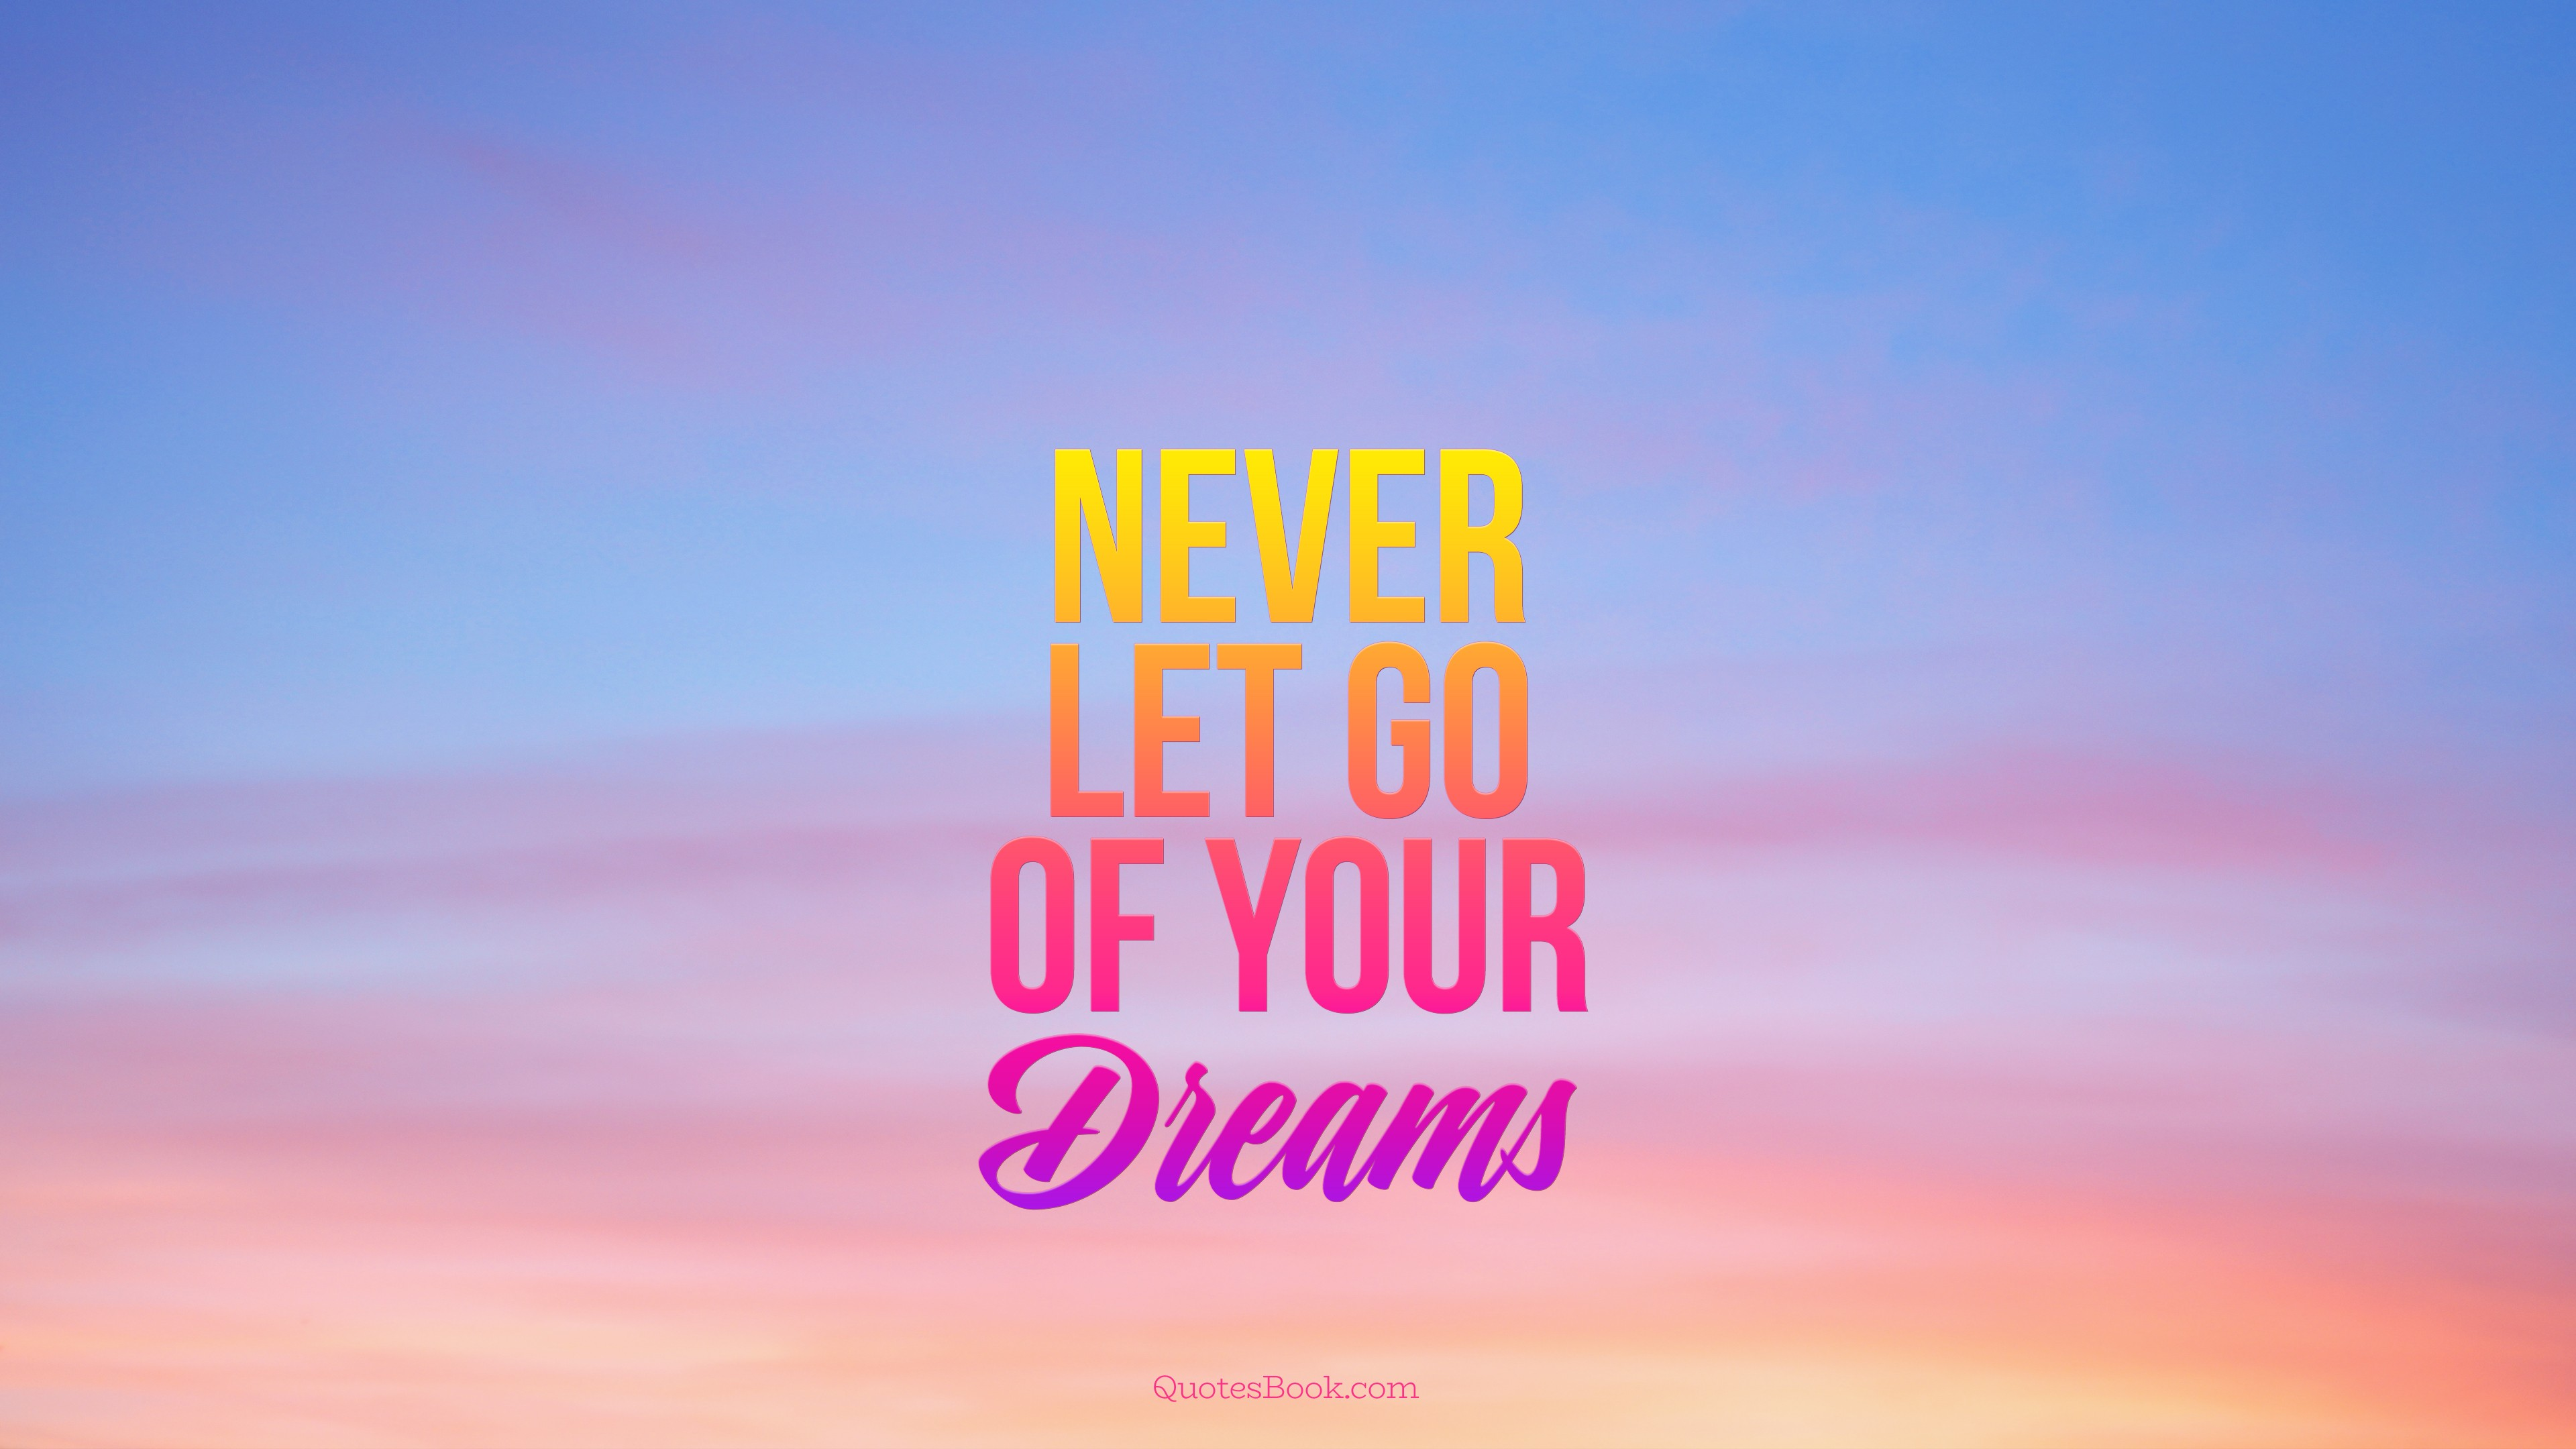 Never Let Go Of Your Dreams Quotesbook